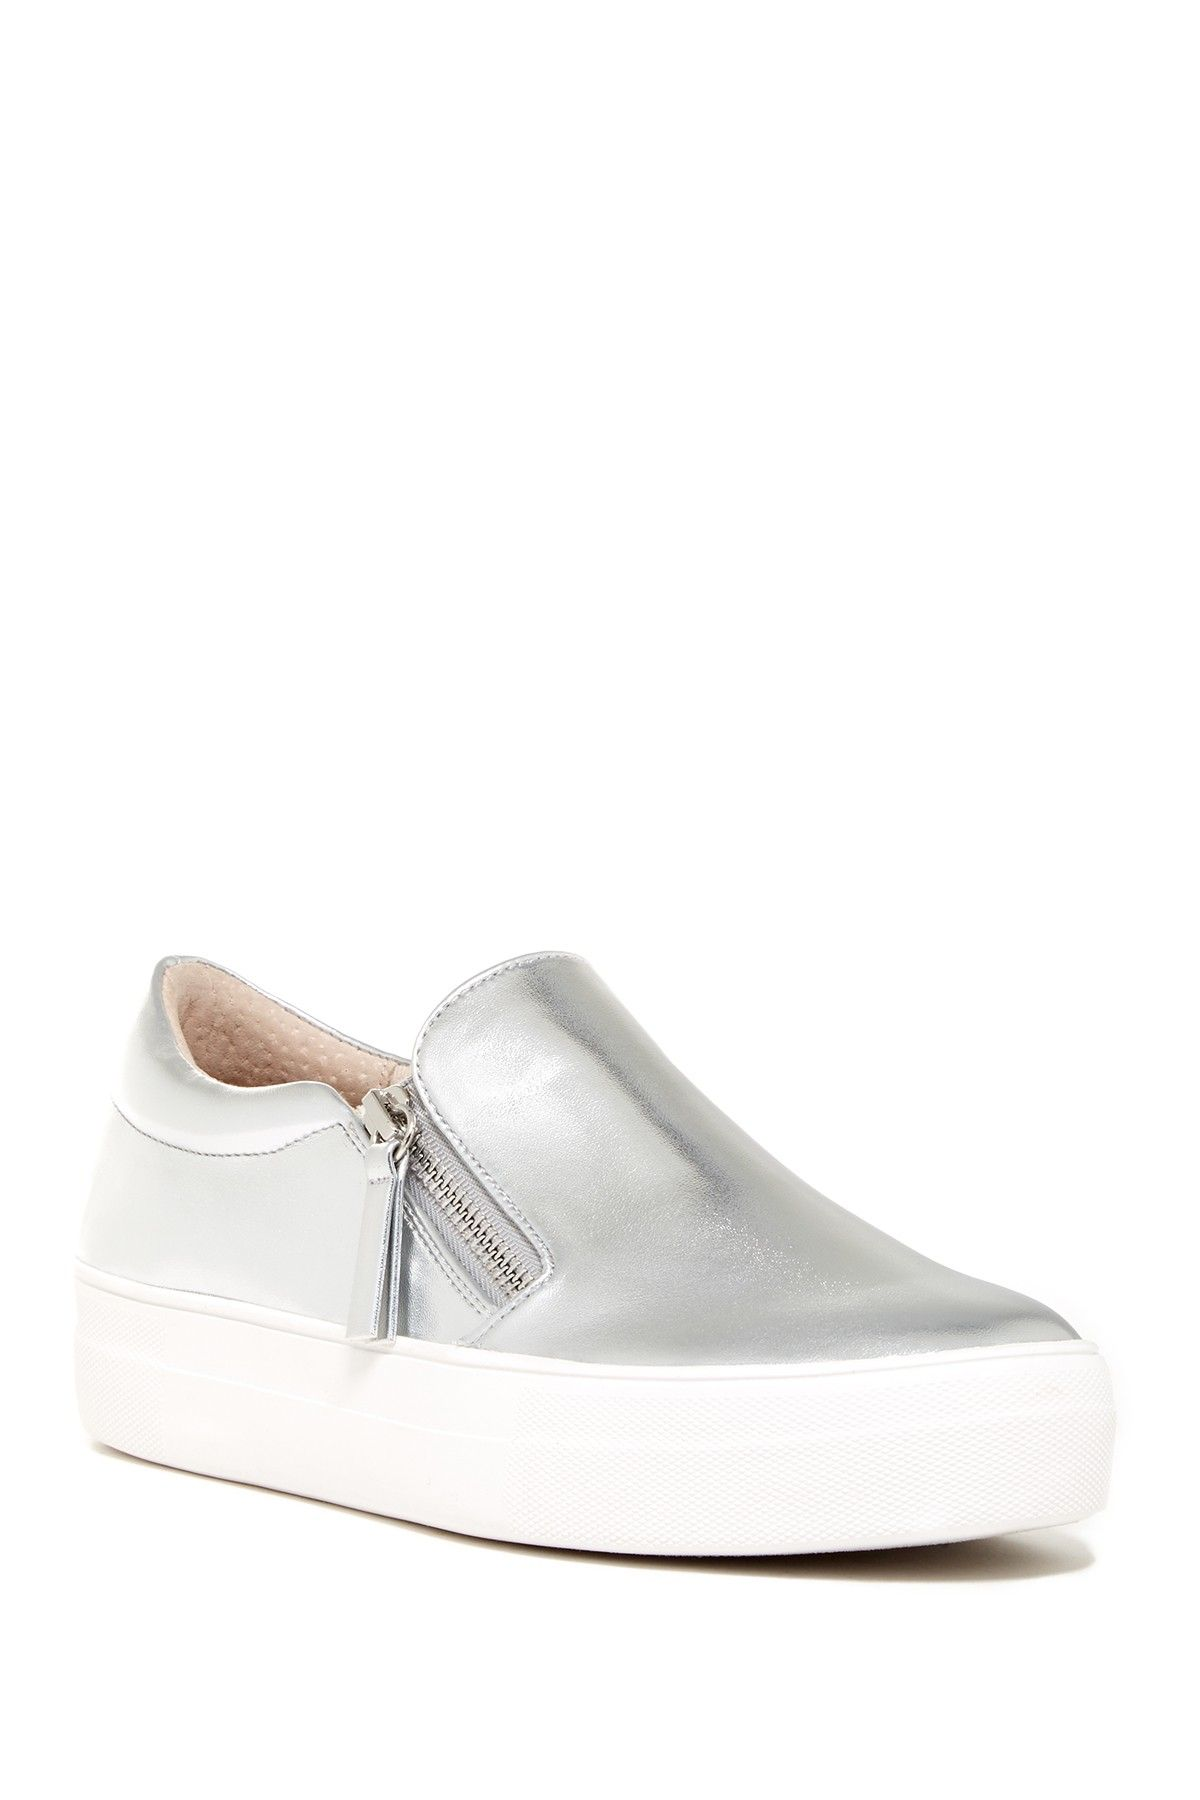 7327e9f02e7 Steve Madden Glaammar Zip Embossed Sneaker | Products | Sneakers ...